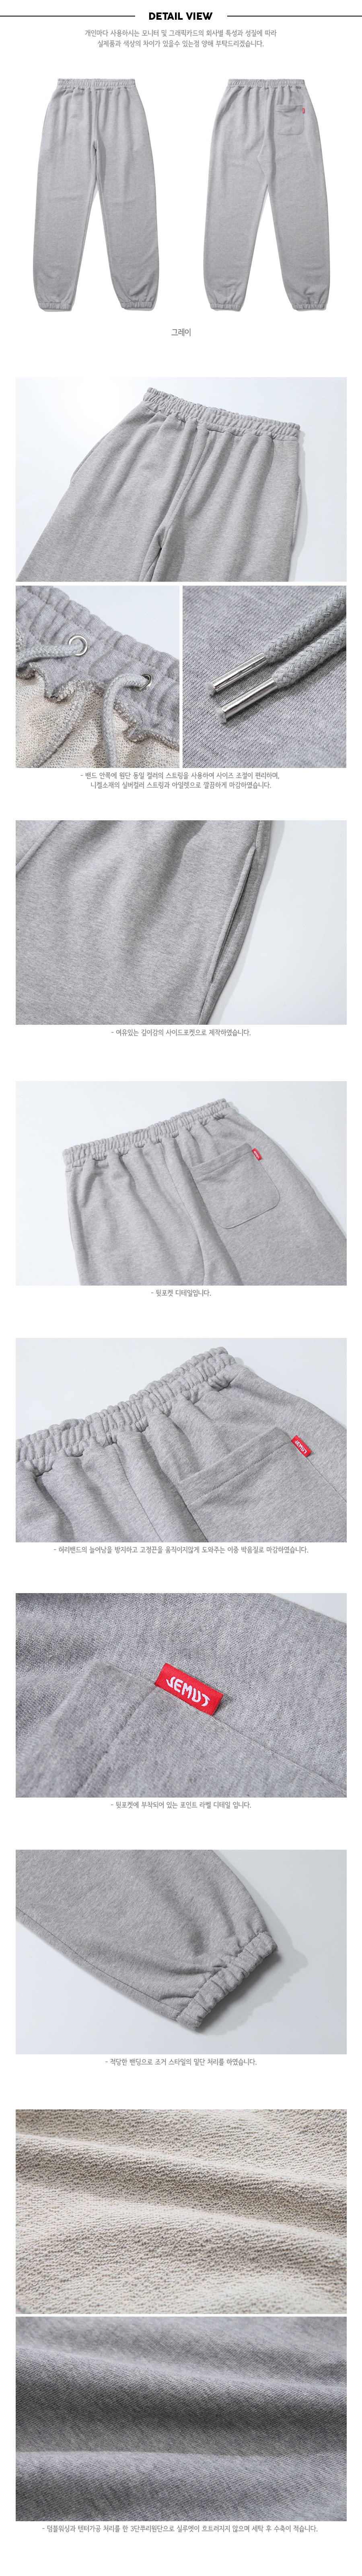 20190129_wide_easy_pants_detail_gray_yh.jpg